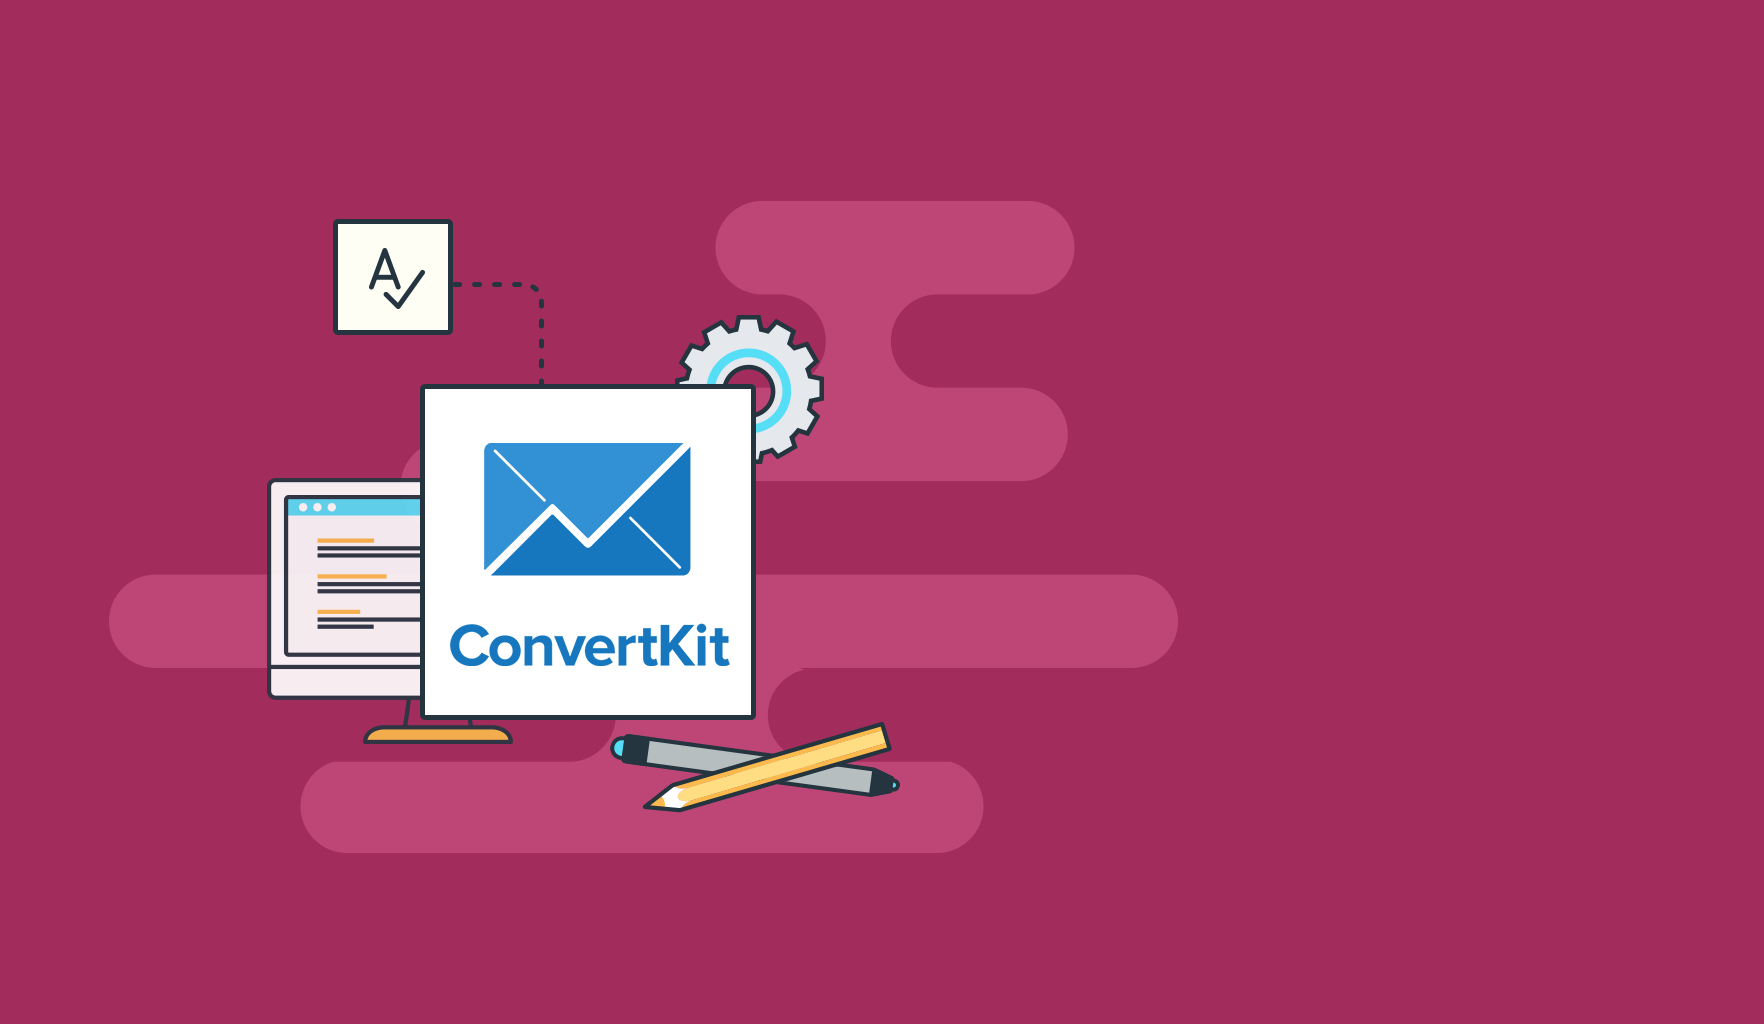 Email Marketing Convertkit Offers Today 2020